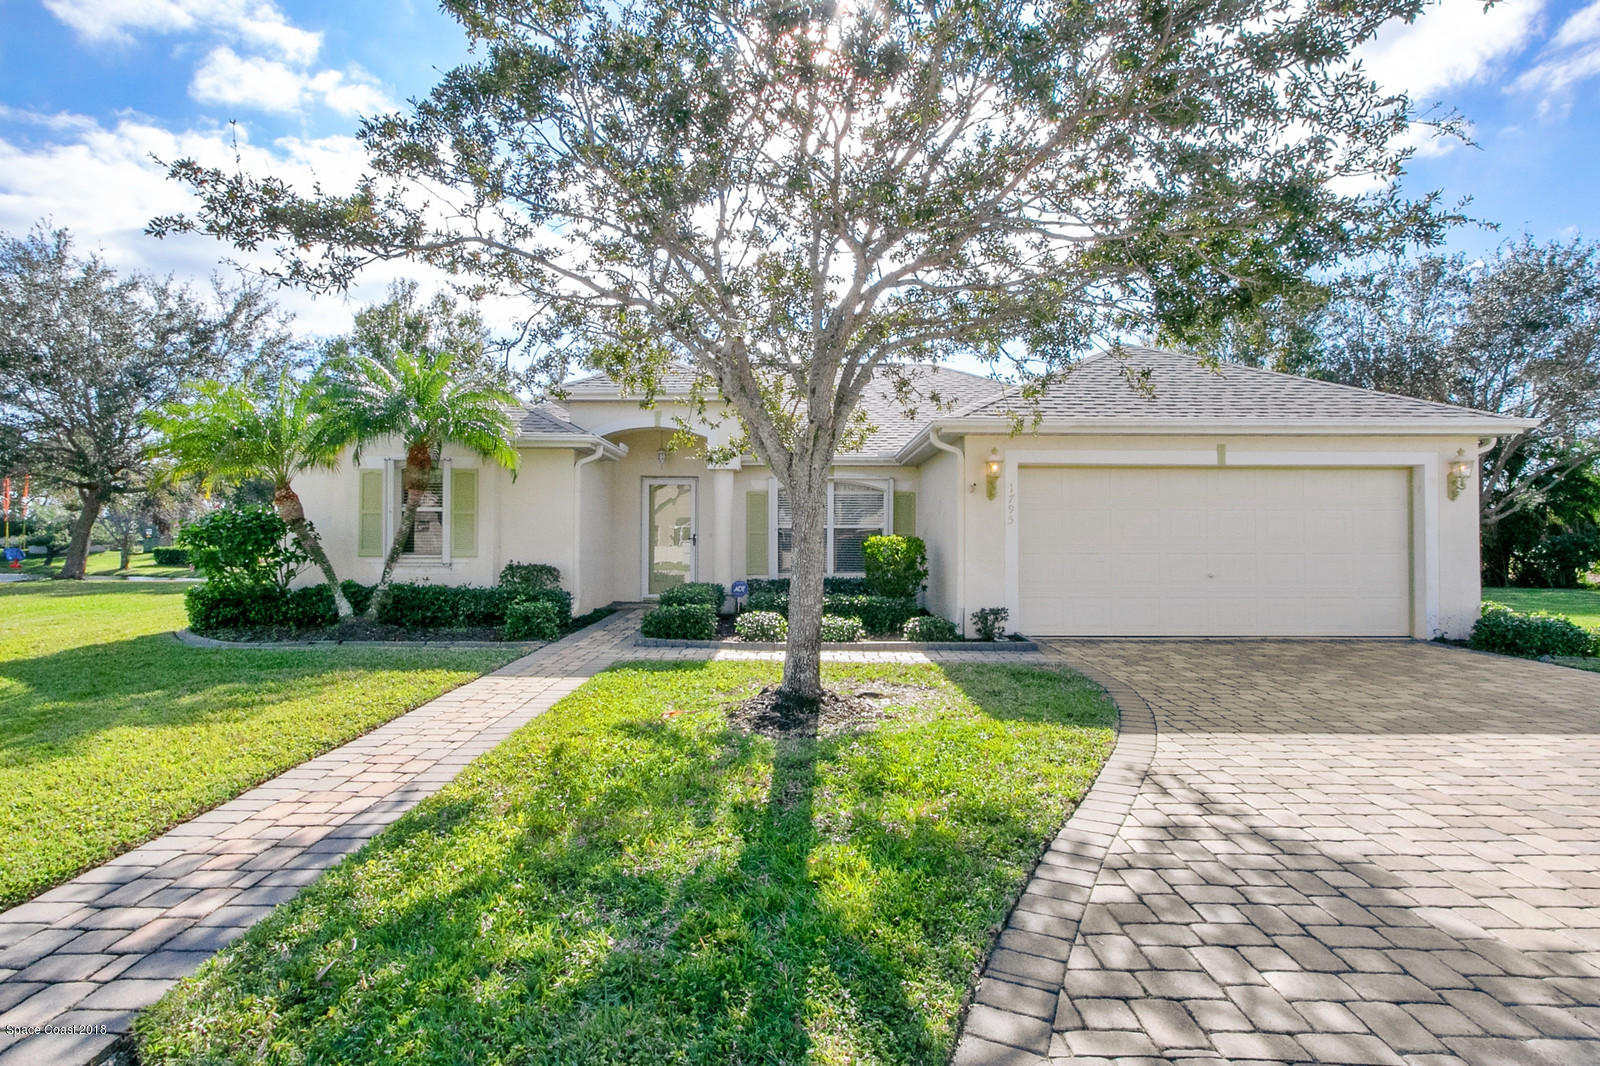 1795 Curlew Court Rockledge Fl 32955 Now Has A New Price